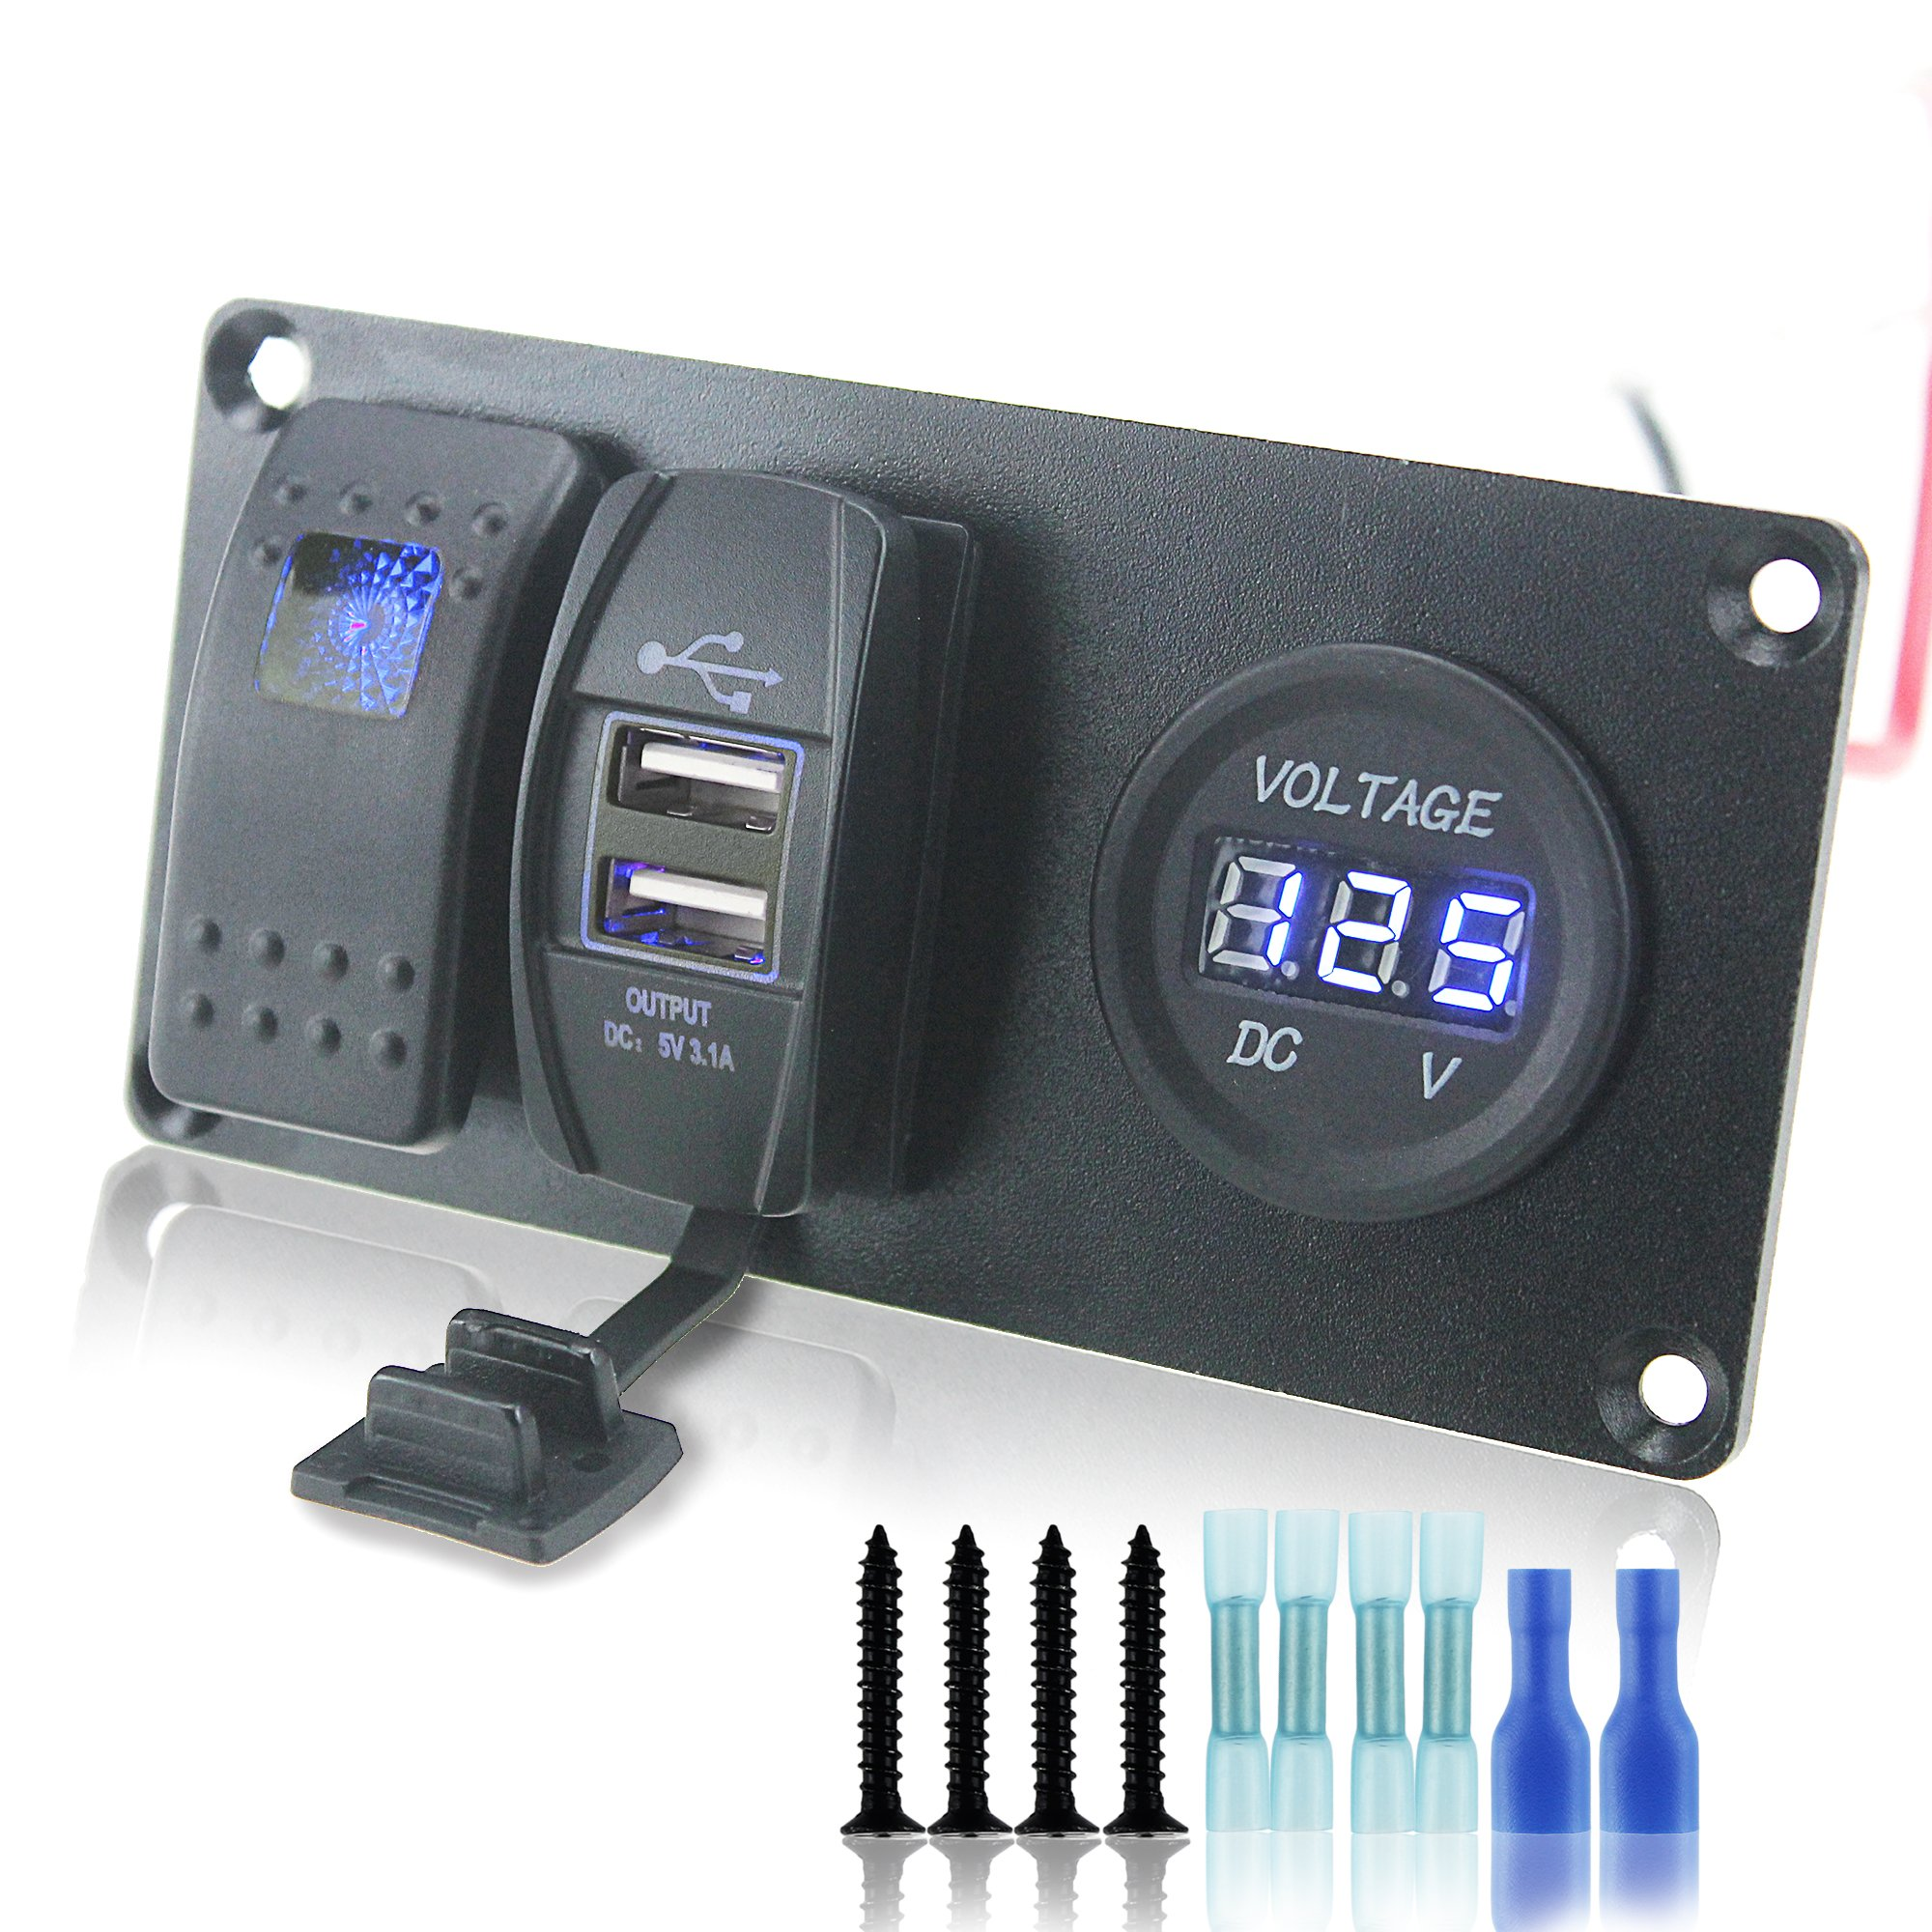 Iztor DC 12V/24V Push Rocker Switch & 3.1A USB & voltmeter socket blue Indicator aluminum panel for Cars Trucks ATVs by iztor